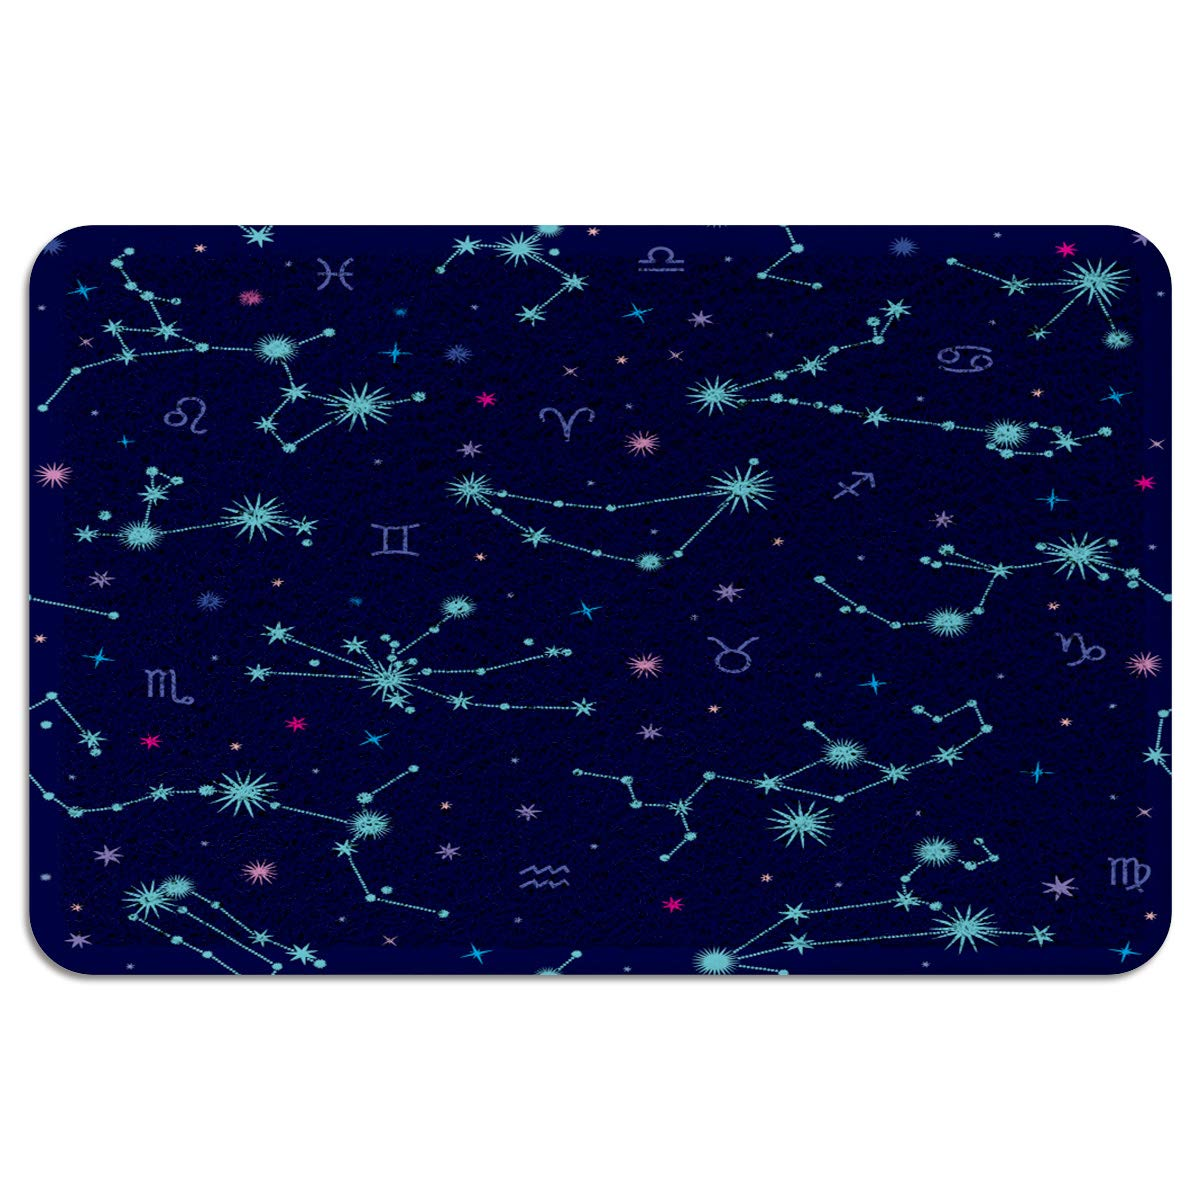 MUSEDAY Indoor/Outdoor Doormat,Durable Heavy Duty Shoes Scraper Mat,Universe Constellations On The Sky Art Simple Design Easy Clean Rug for Pet Bowl(24''x35'',W x L)